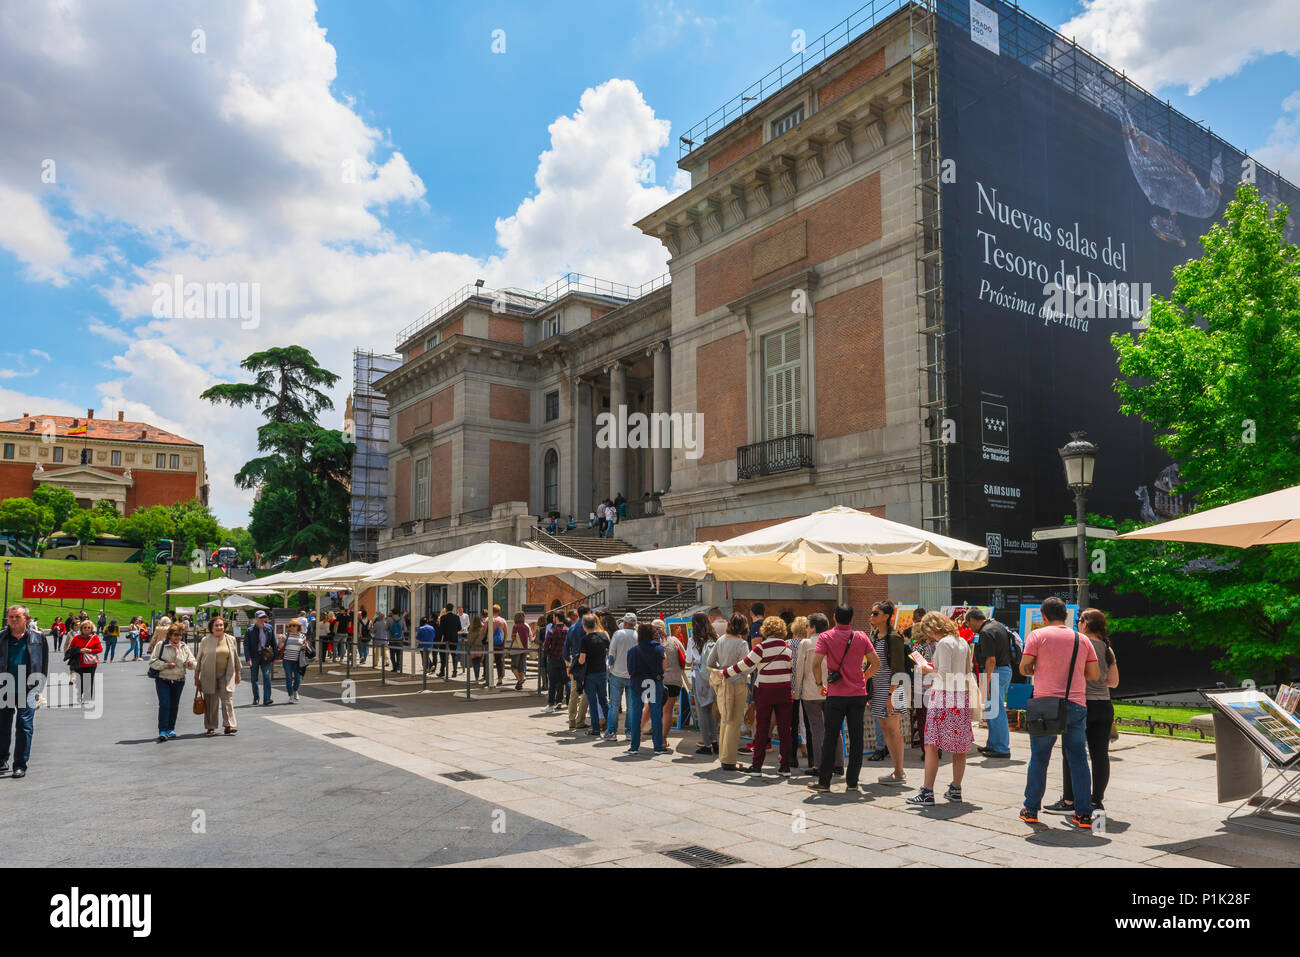 Prado Madrid queue, view of people queuing for tickets outside the Prado Museum building in central Madrid, Spain. - Stock Image